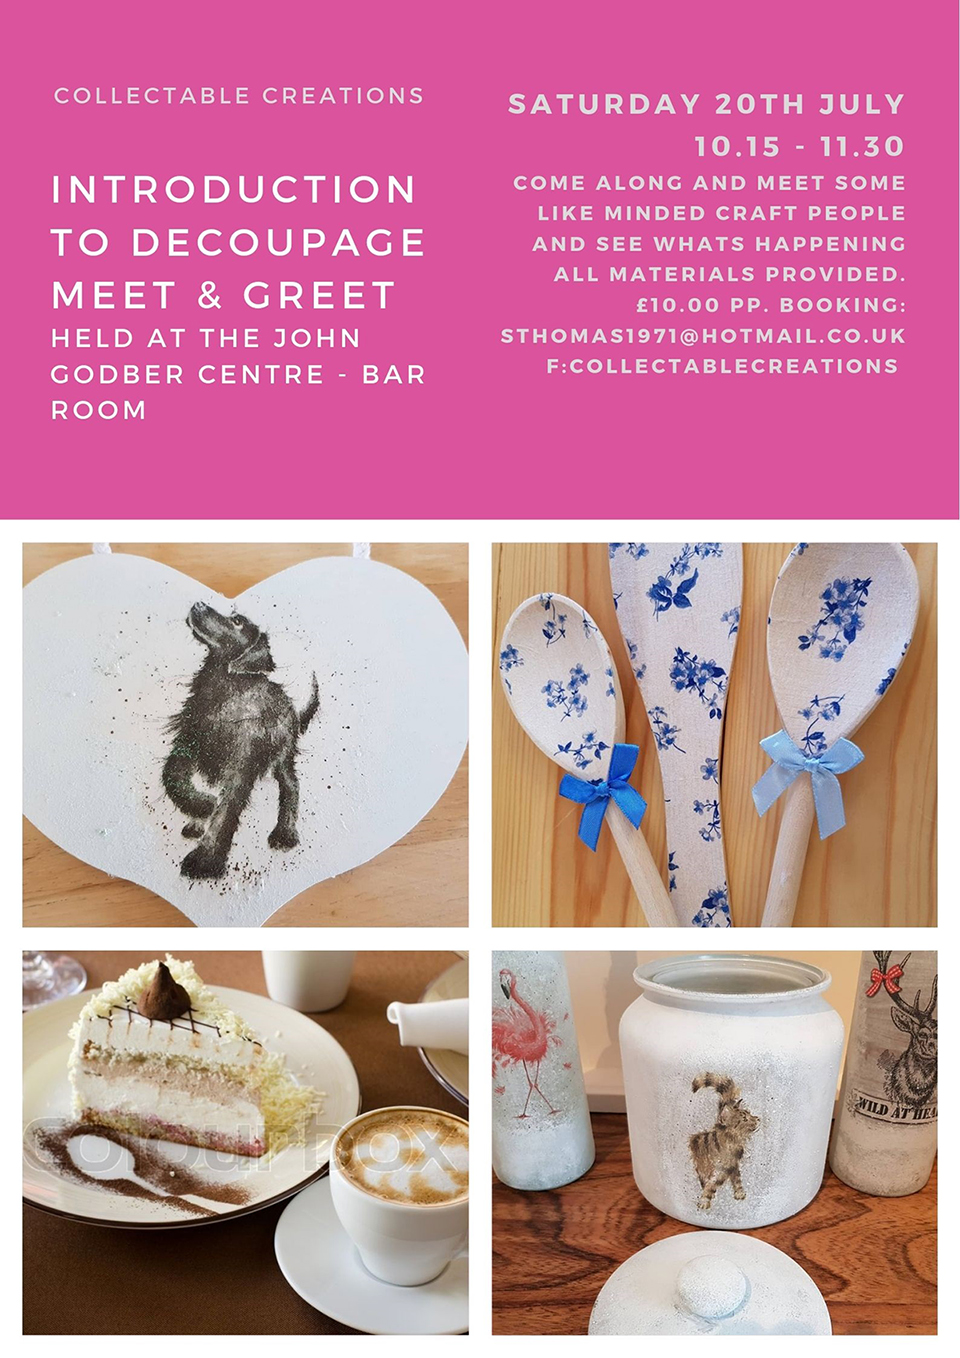 Collectable Creations Introduction to Decoupage meet & greet event 2019 poster